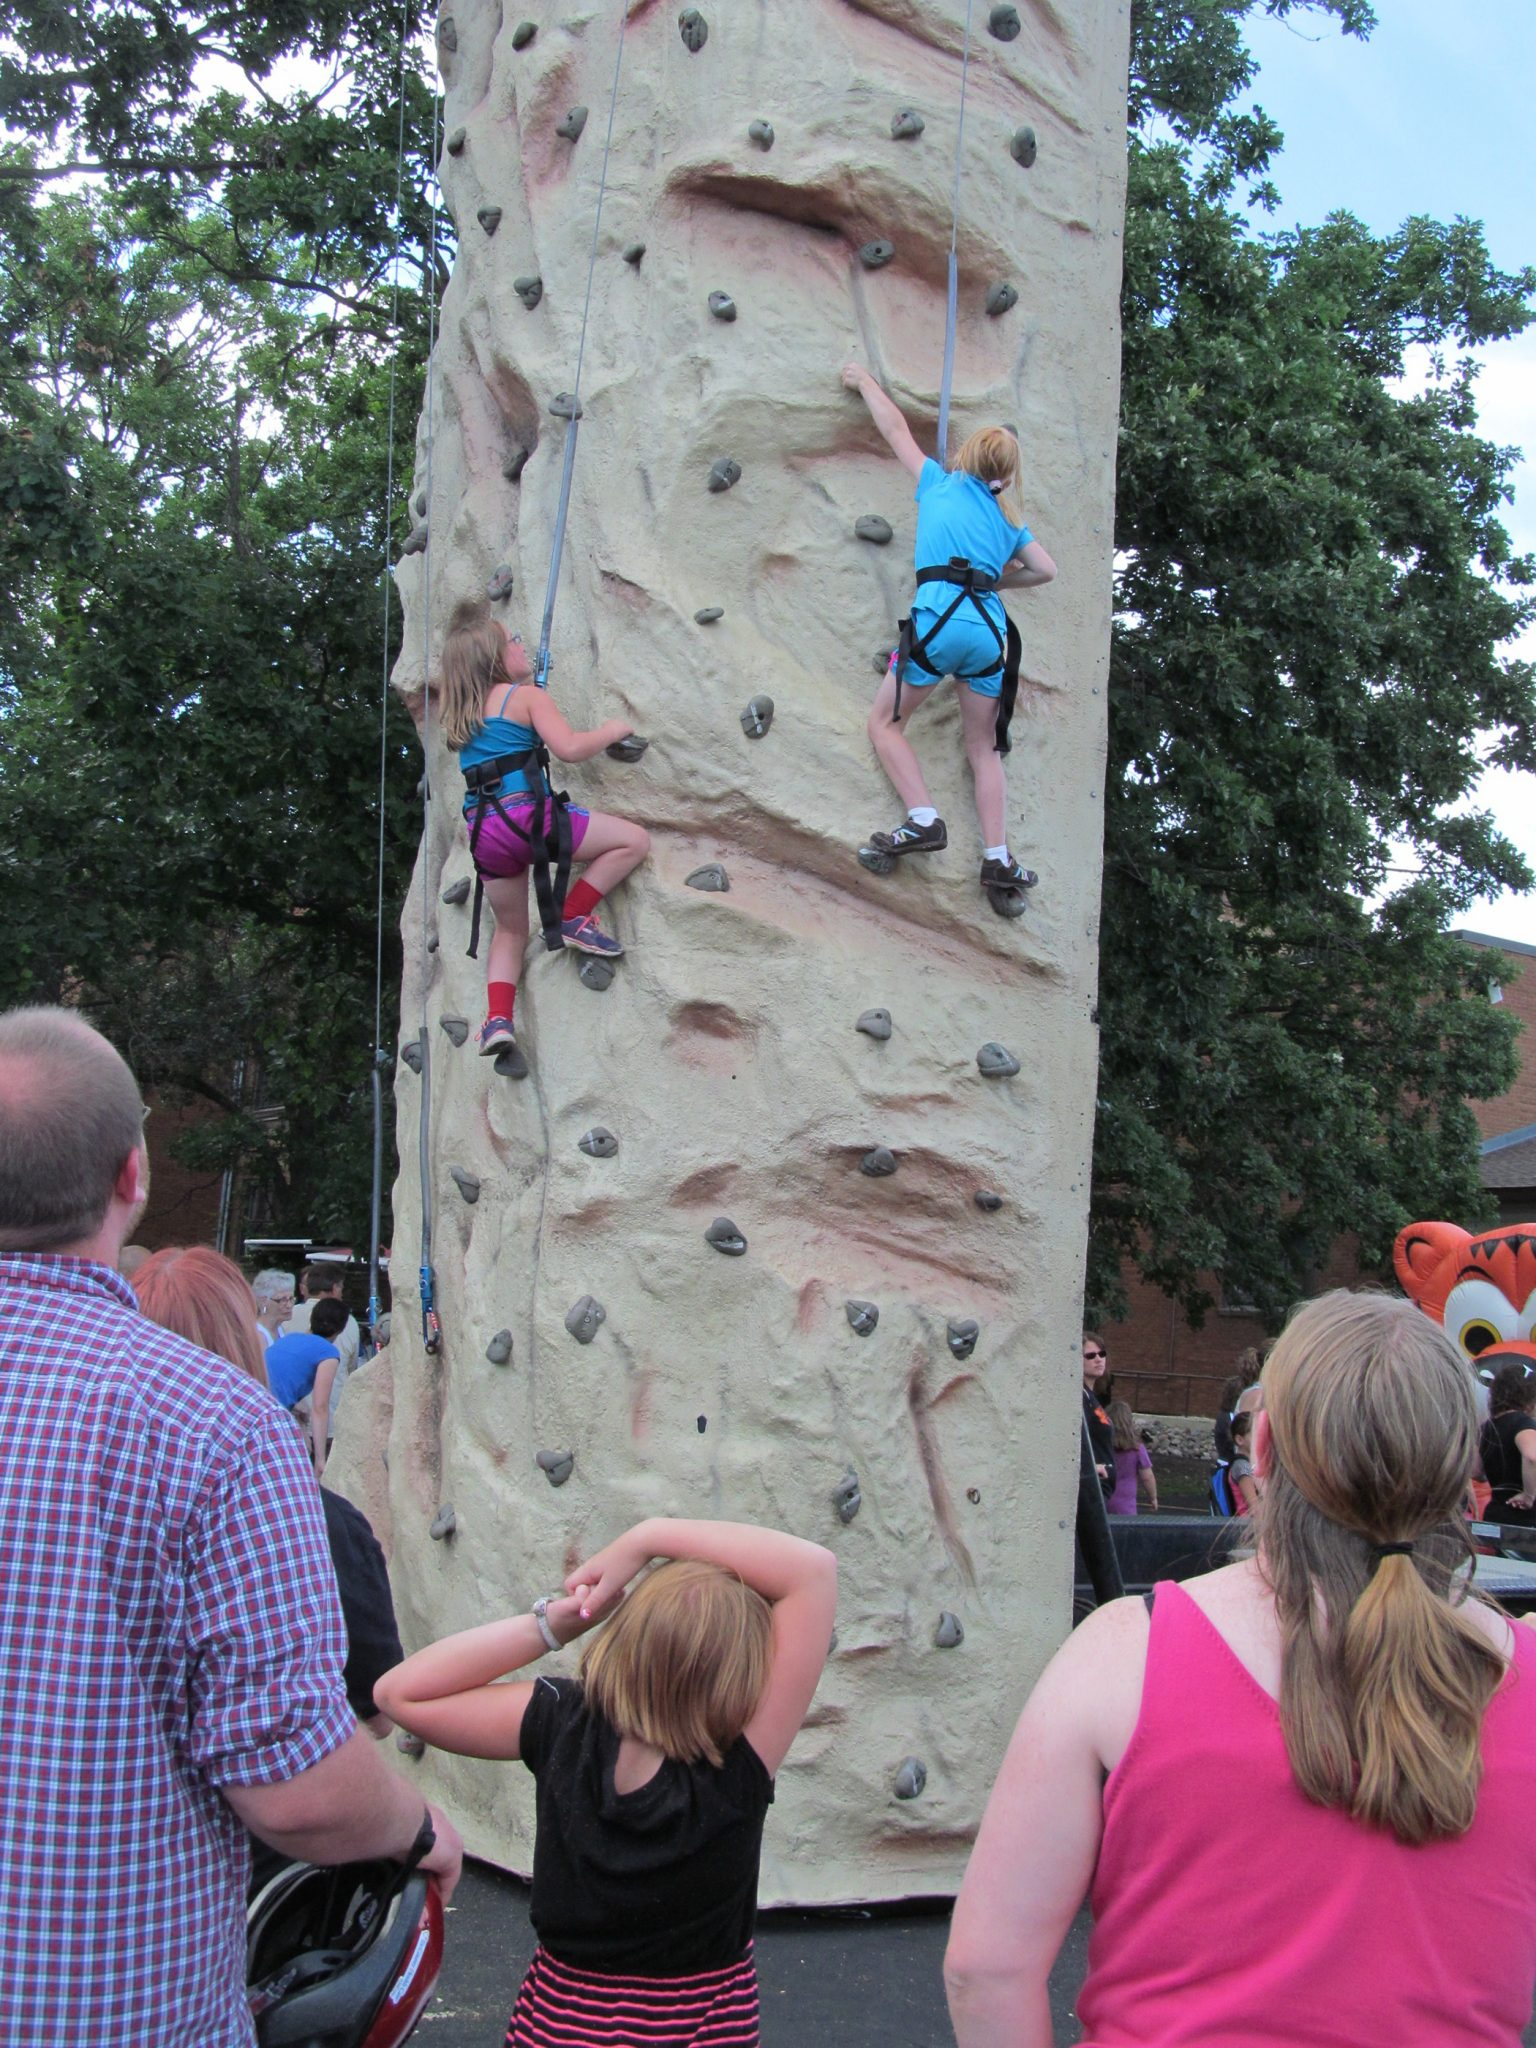 Kids climbing the rock wall at the Block Party.